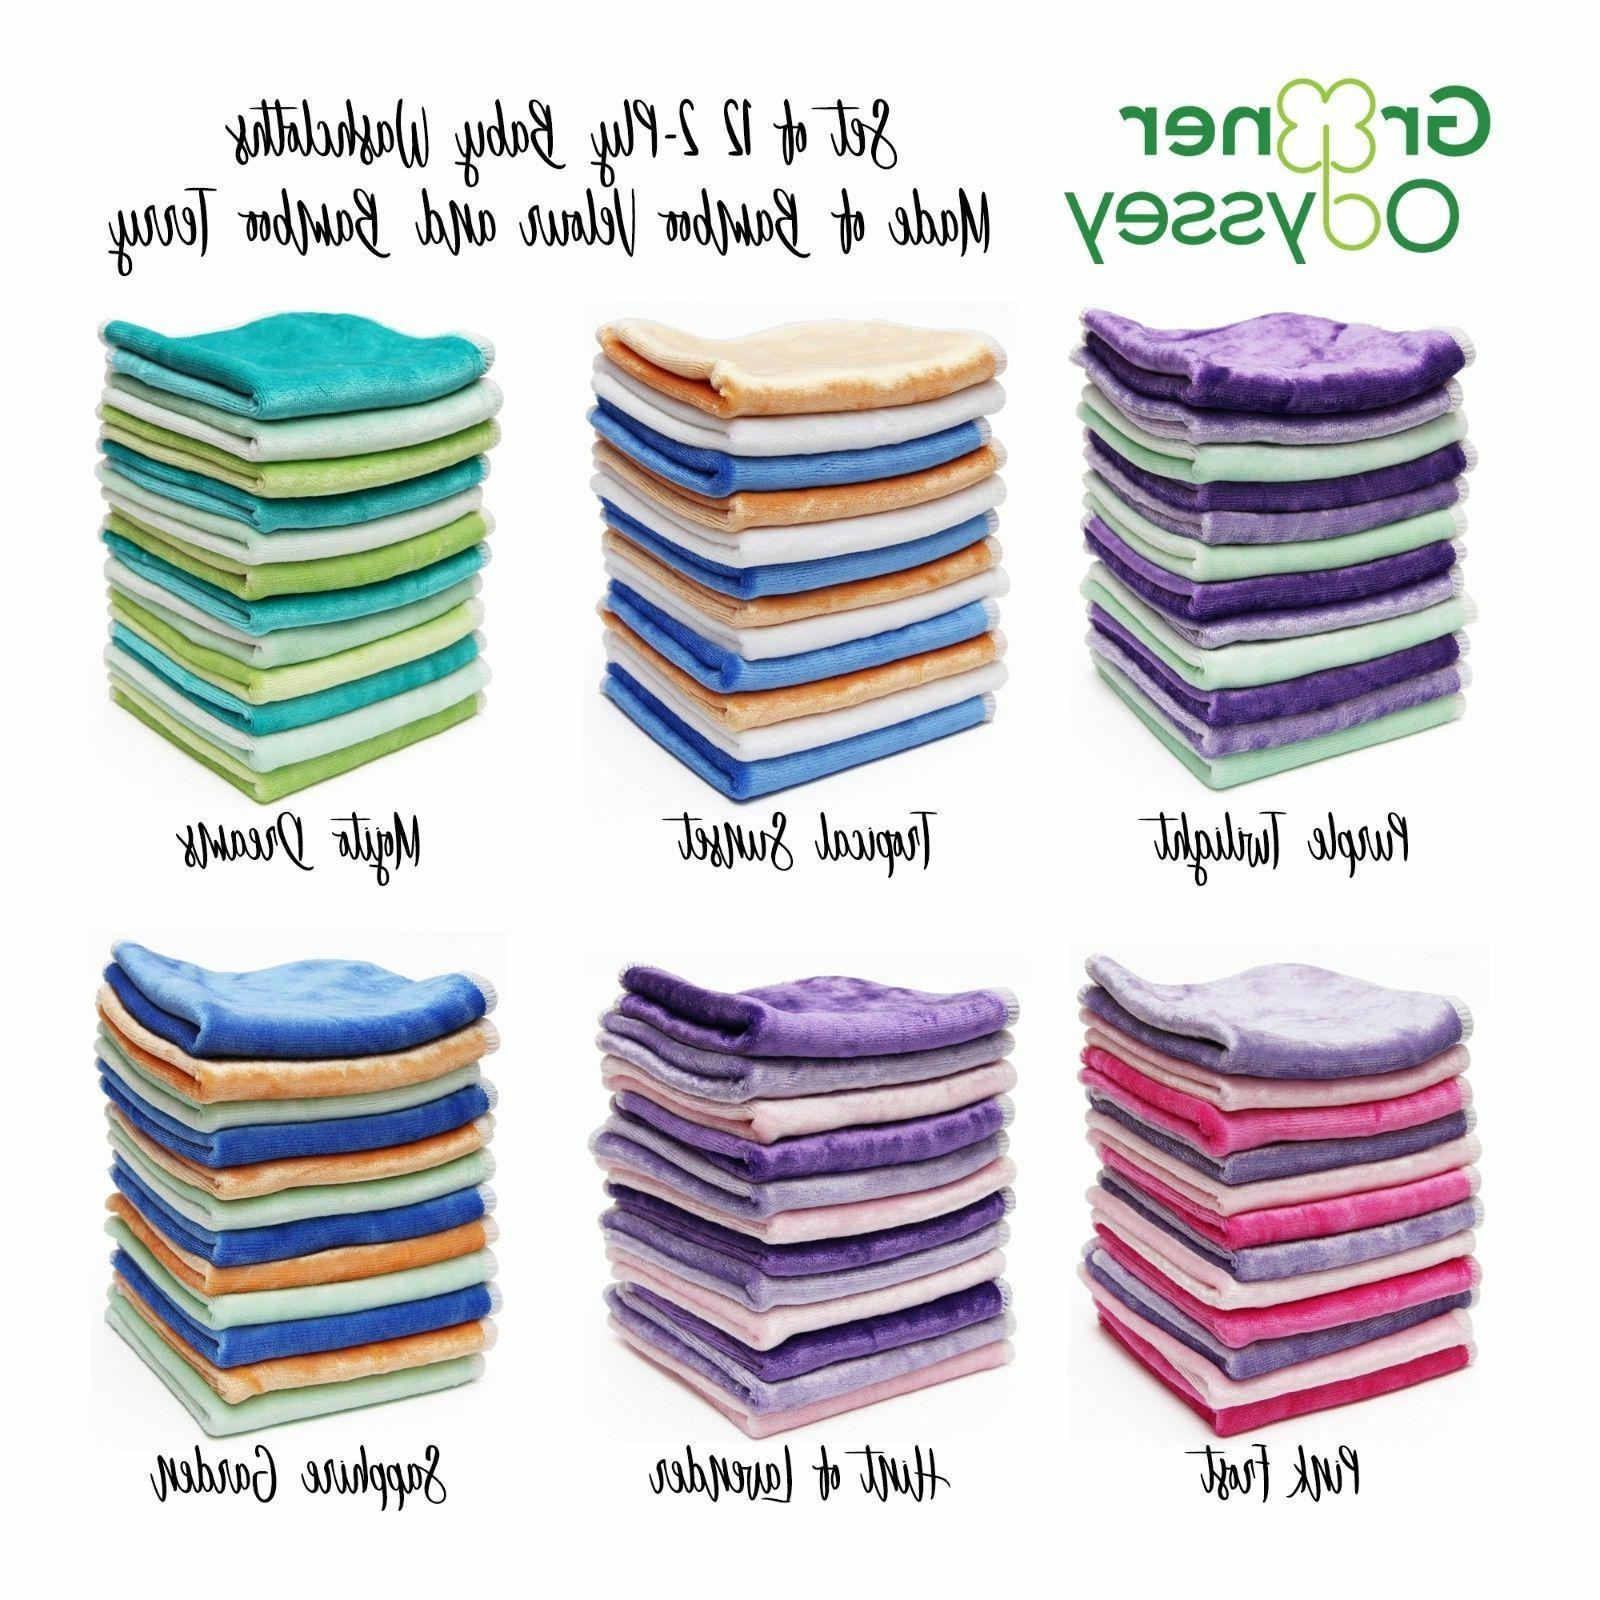 bamboo velour terry soft baby washcloths cloth